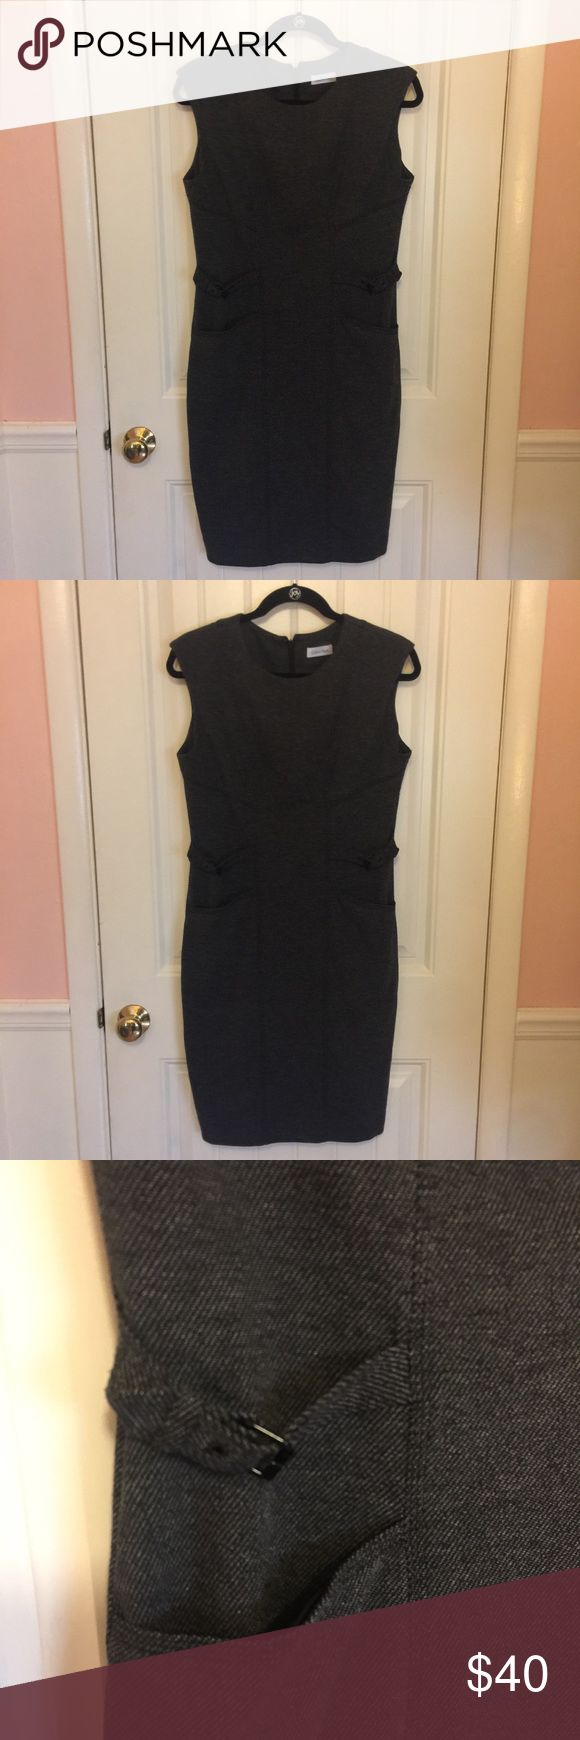 Calvin Klein Gray Tweed Work Shift Dress Calvin Klein gray and black soft tweed knee-length Shift Dress with cap sleeve, pockets, and slimming aide buckle detail. Great condition from a smoke free home. Make me an offer! Calvin Klein Dresses